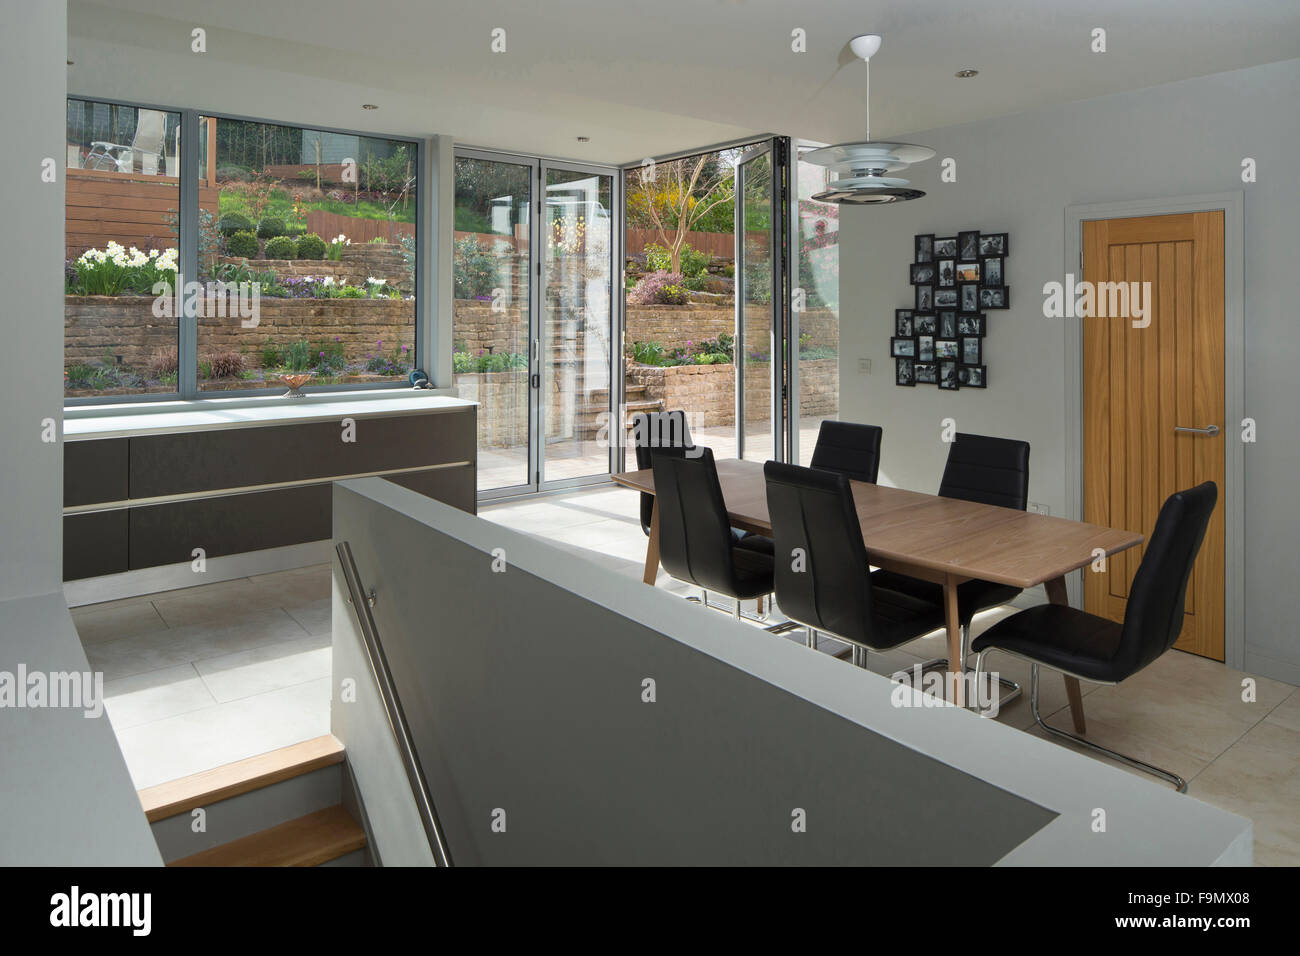 A large open plan area, a kitchen and dining area, with views out of the large full size glass wall panels onto - Stock Image